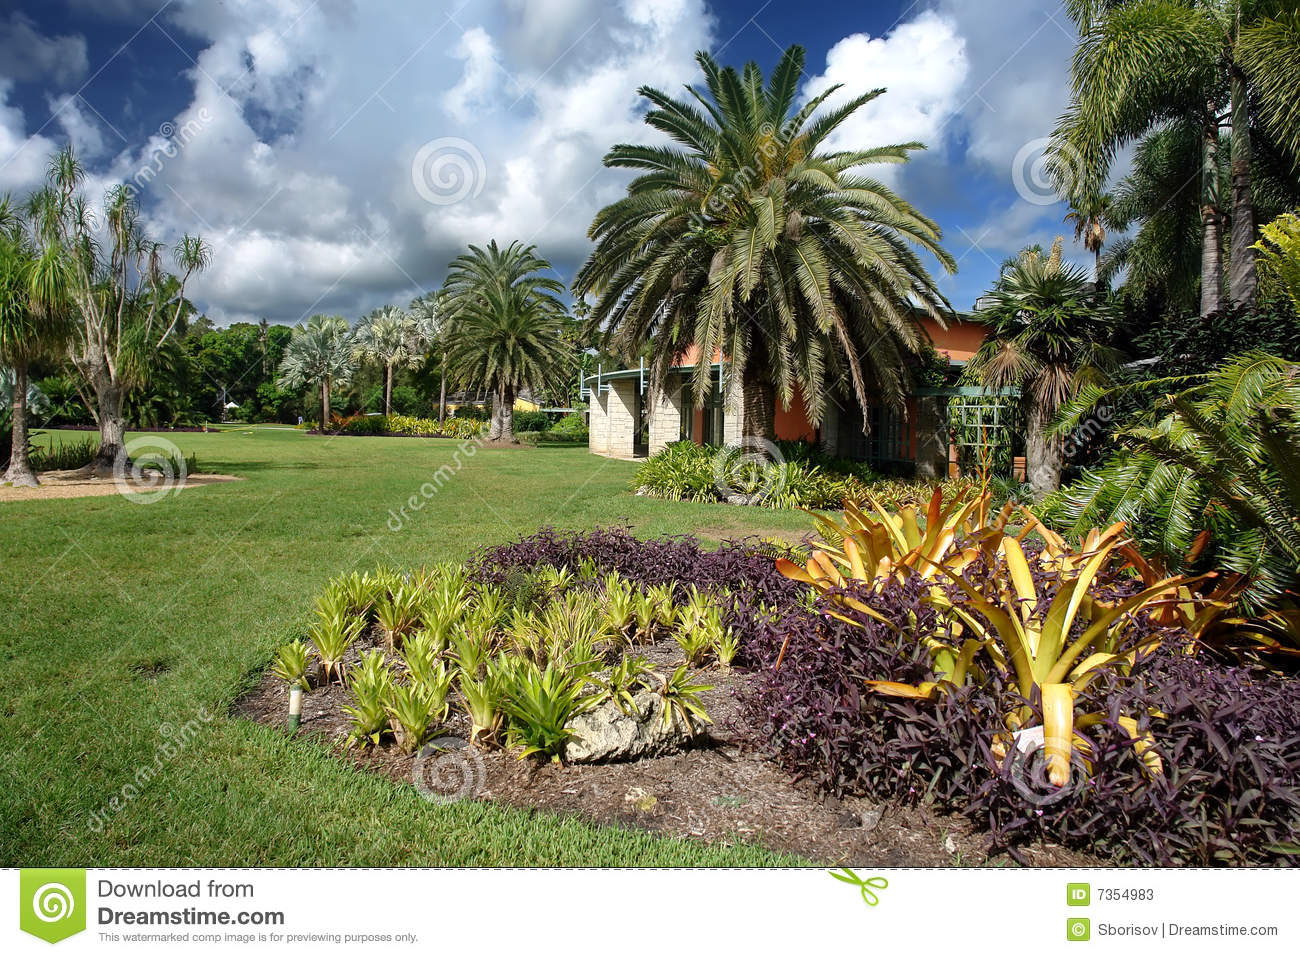 Fairchild tropical botanic garden stock photos image - Fairchild tropical botanic garden hours ...